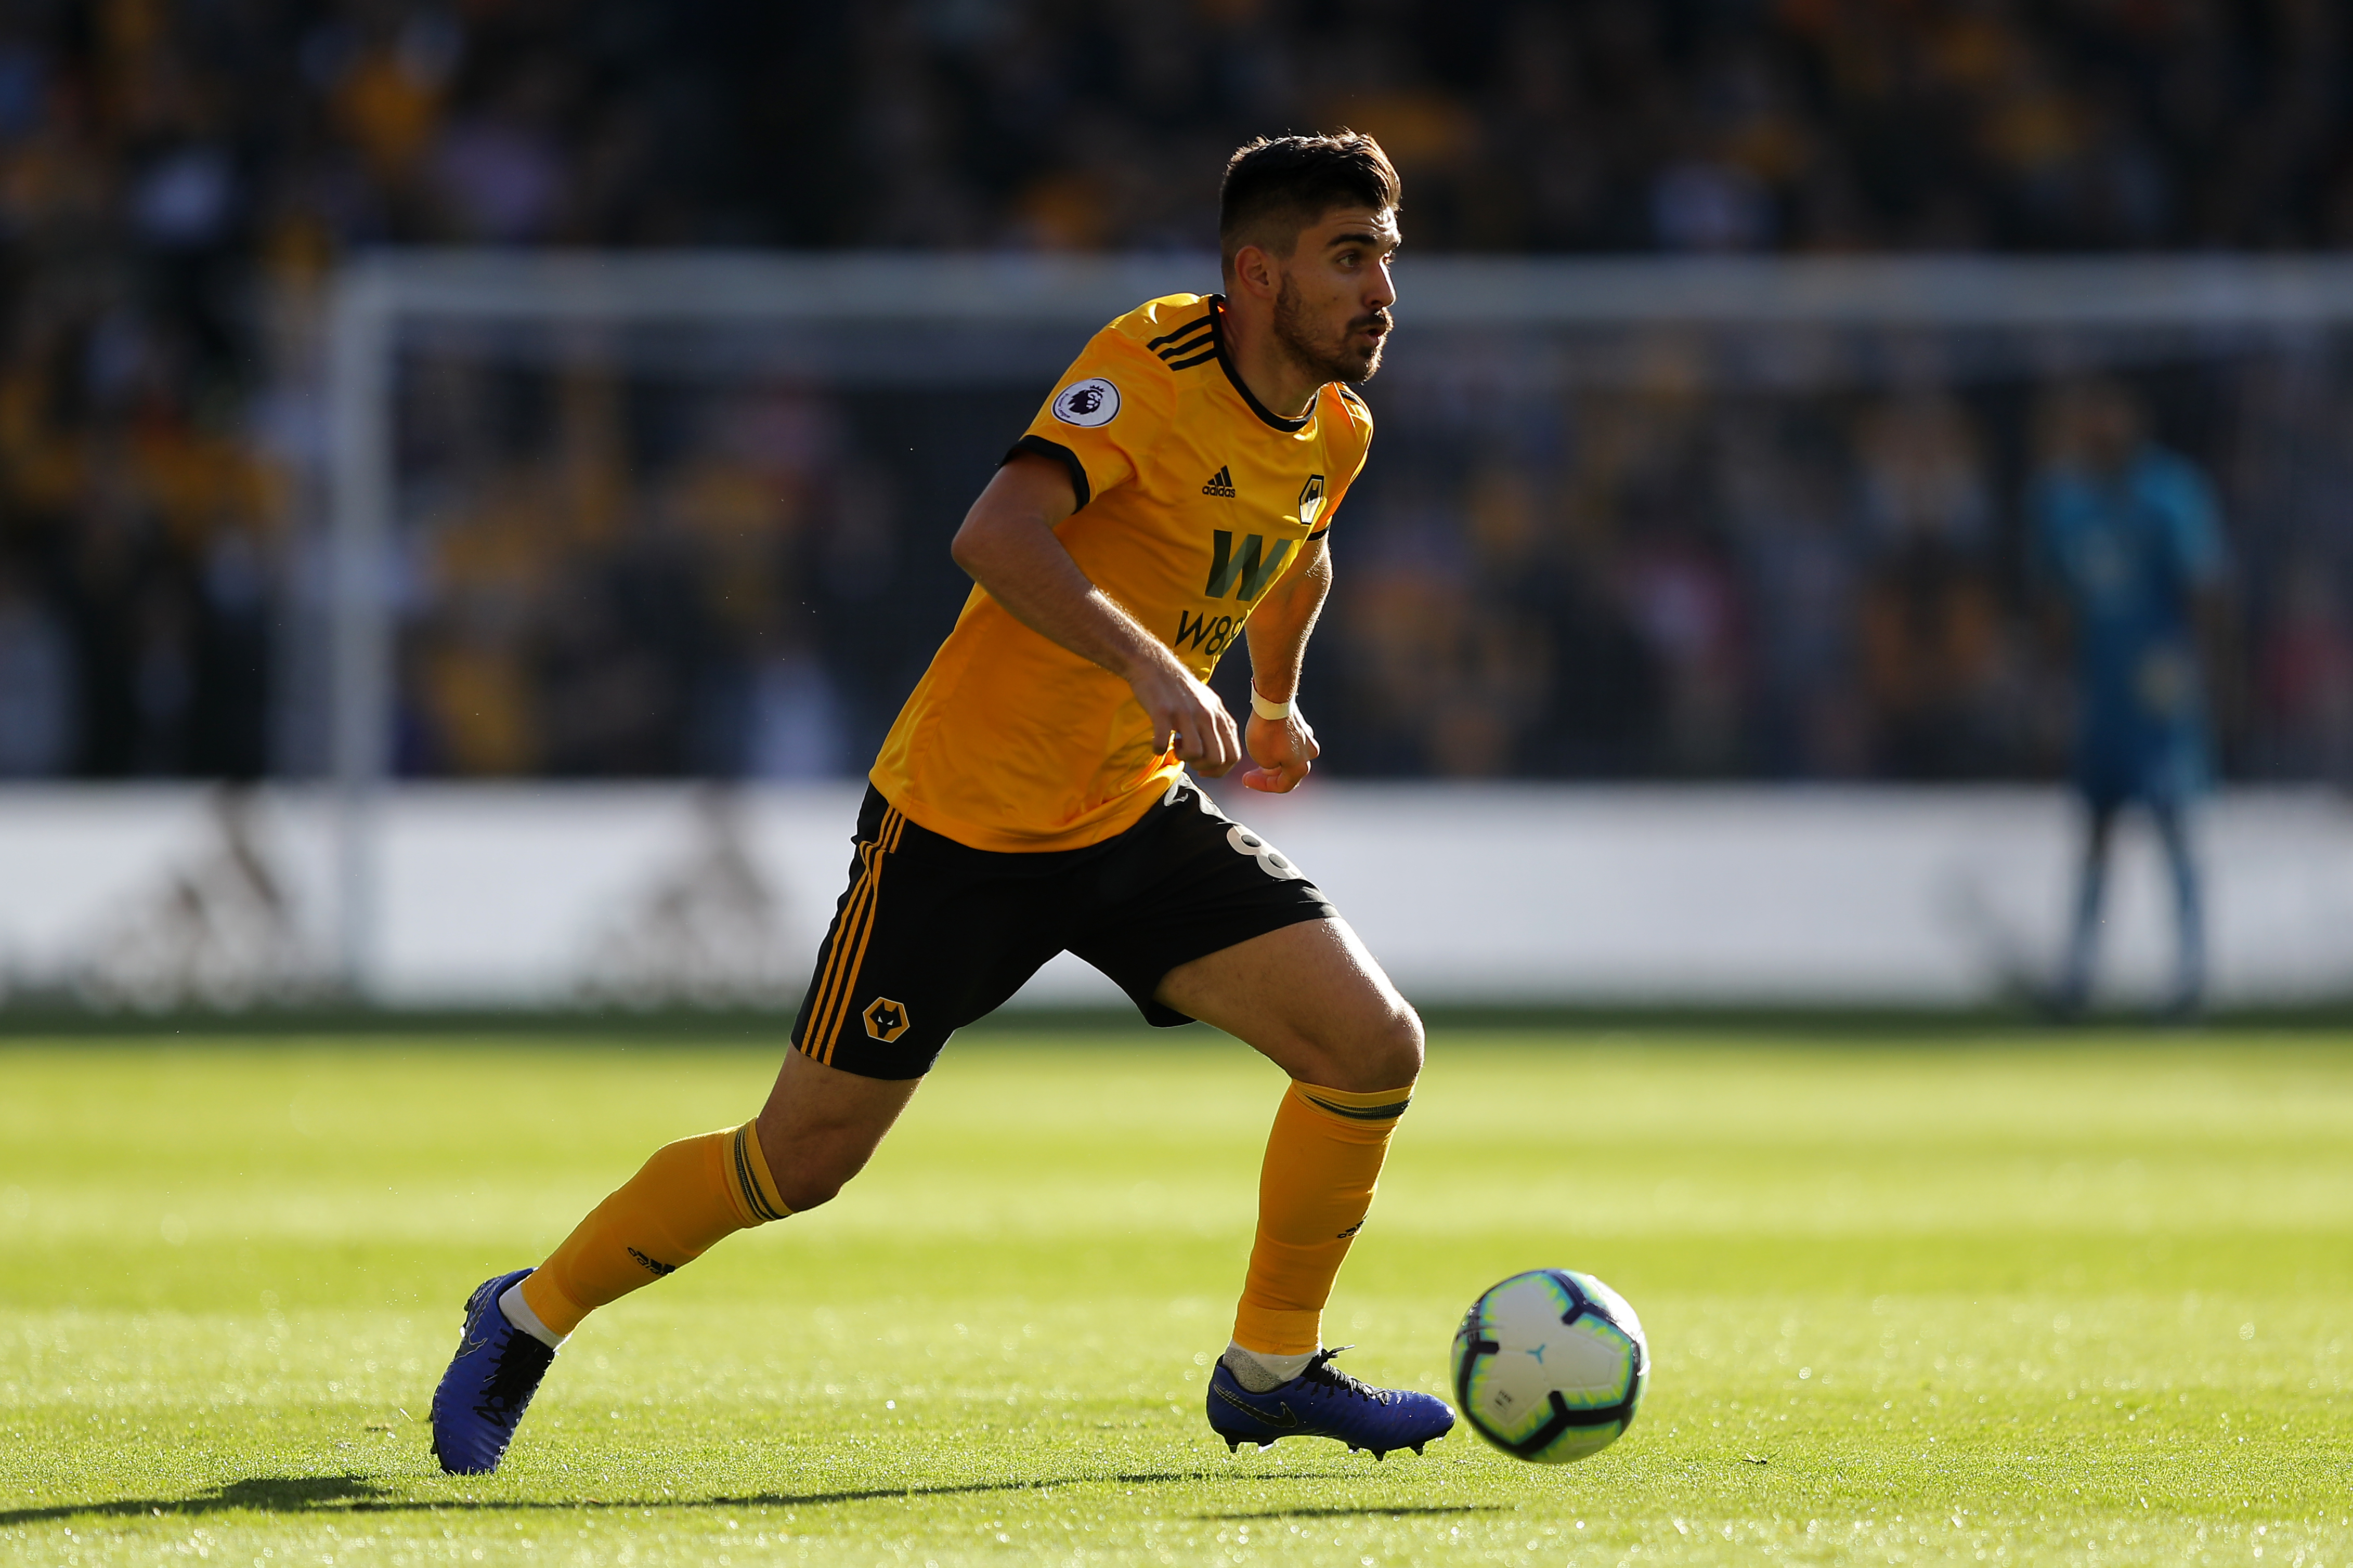 Ruben Neves will stay at Wolves this season. (Photo by Richard Heathcote/Getty Images)